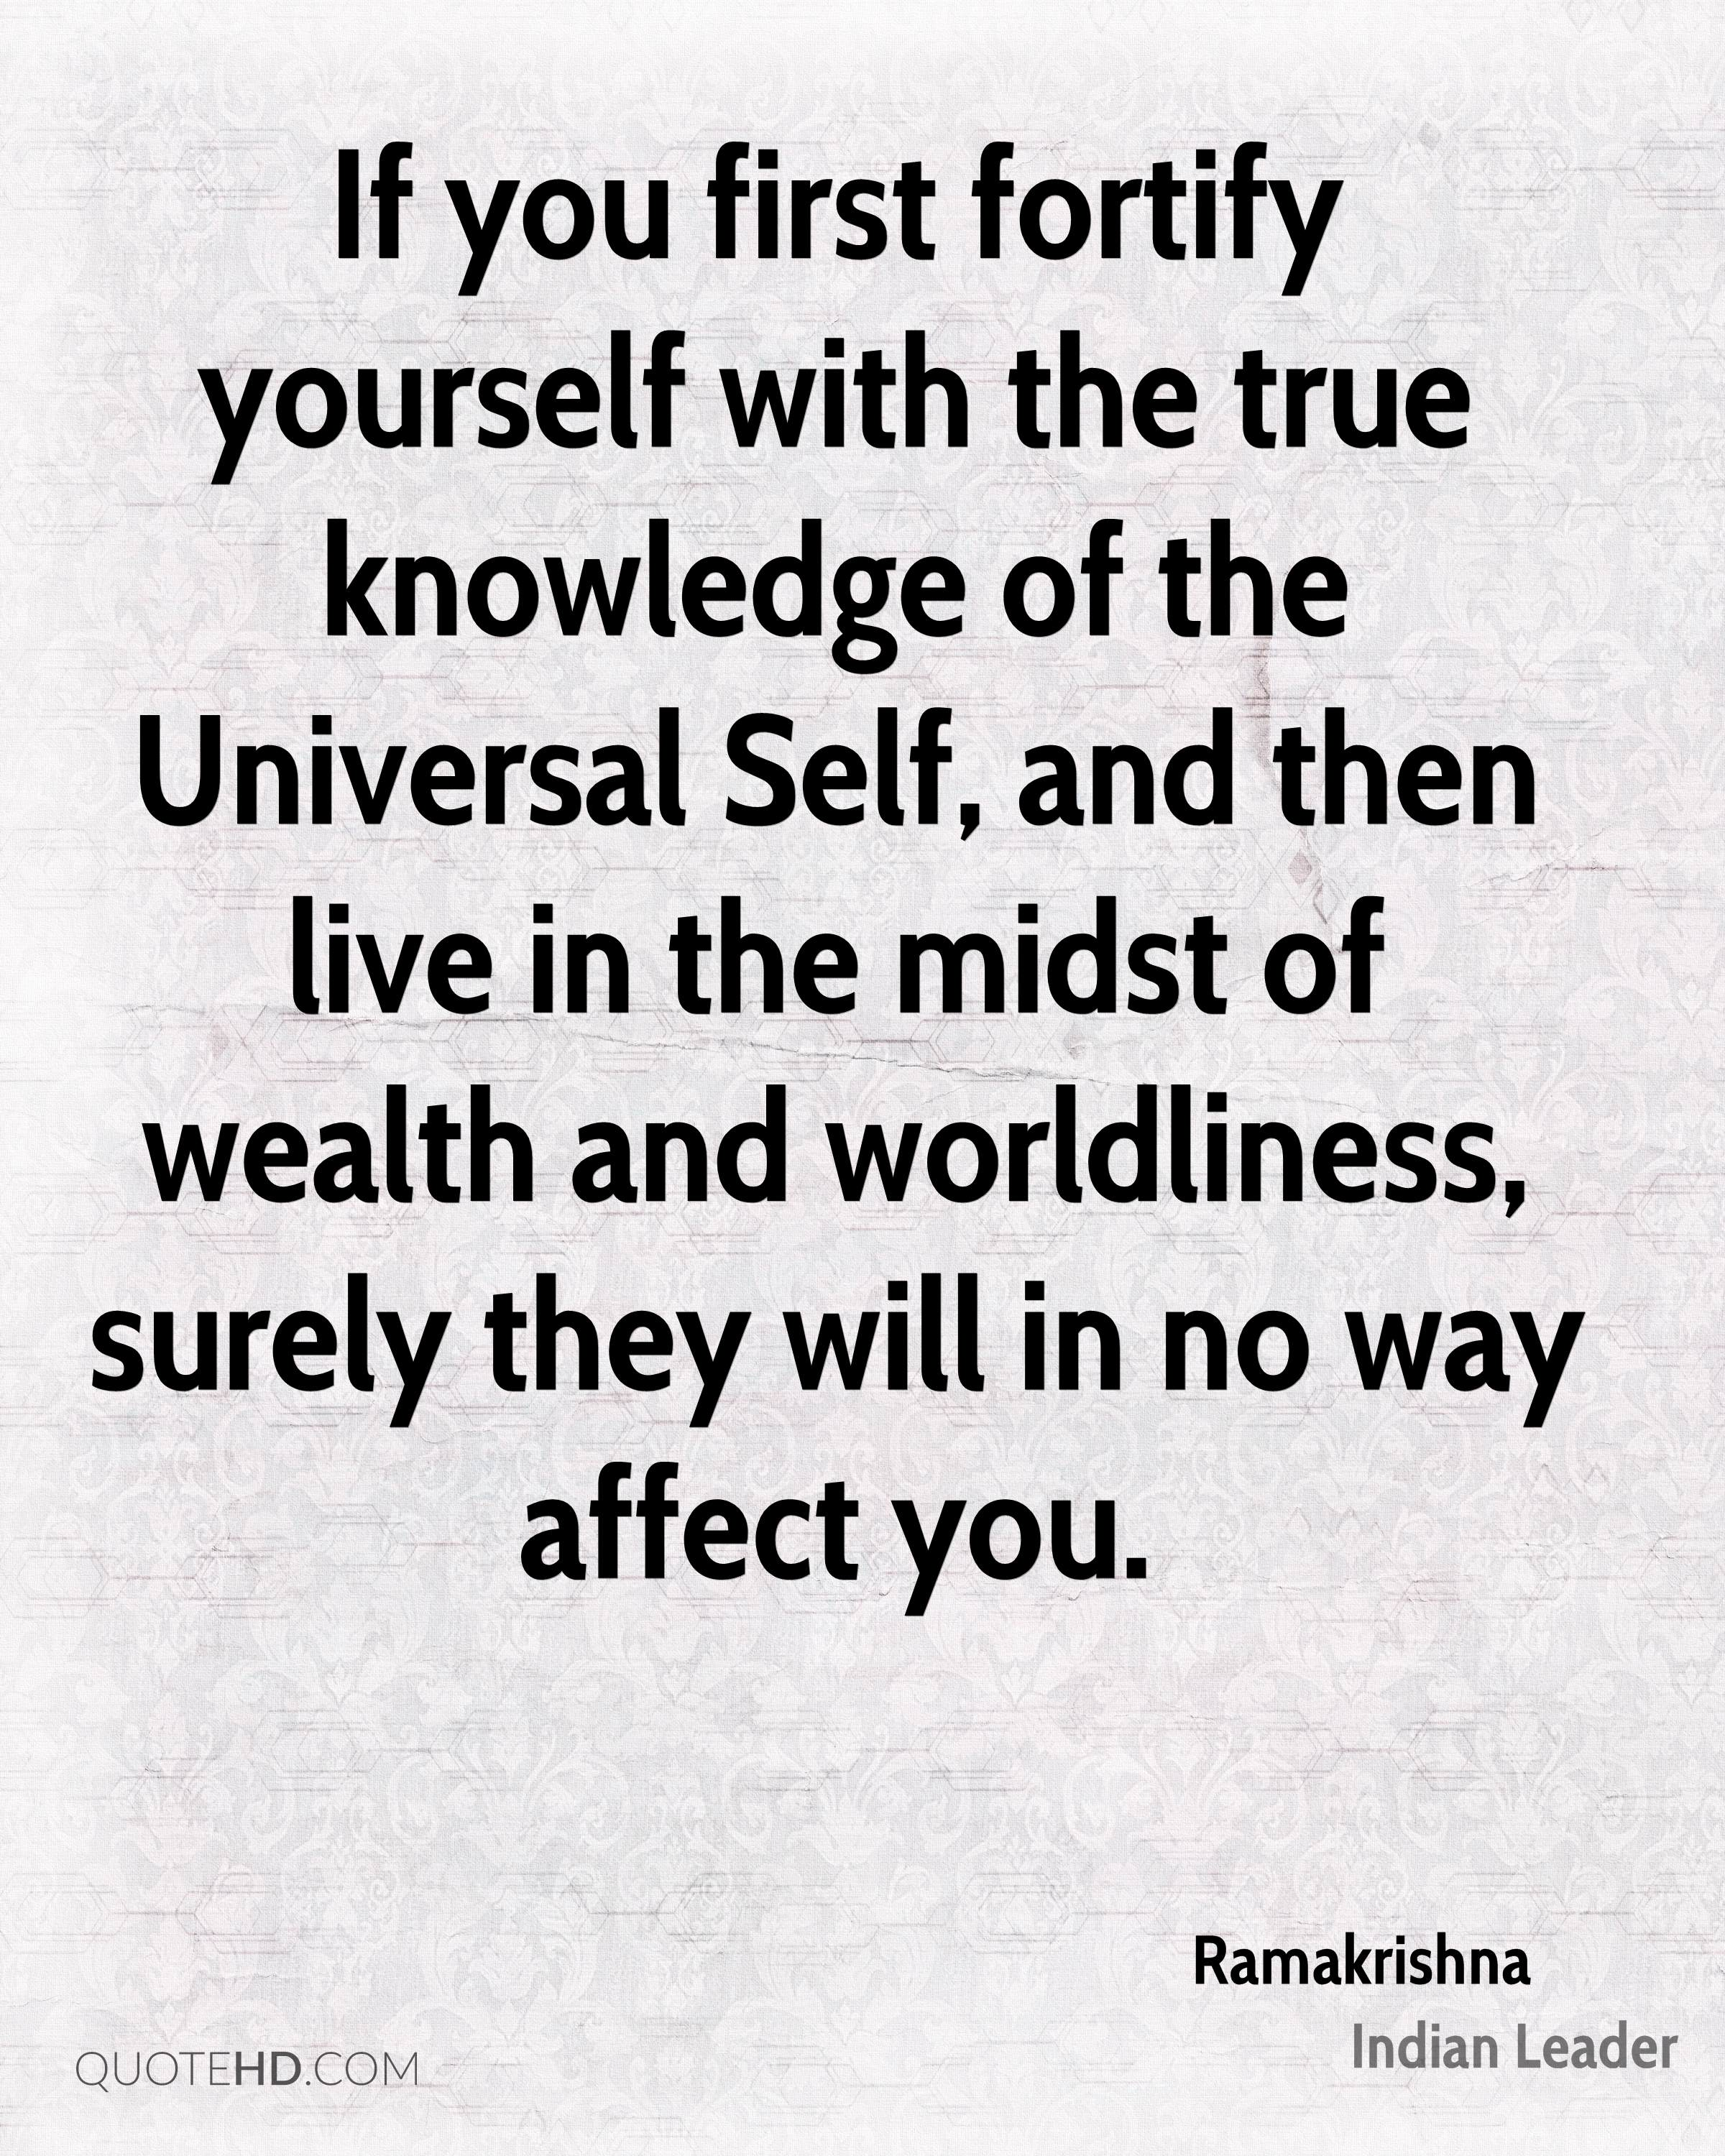 If you first fortify yourself with the true knowledge of the Universal Self, and then live in the midst of wealth and worldliness, surely they will in no way affect you.